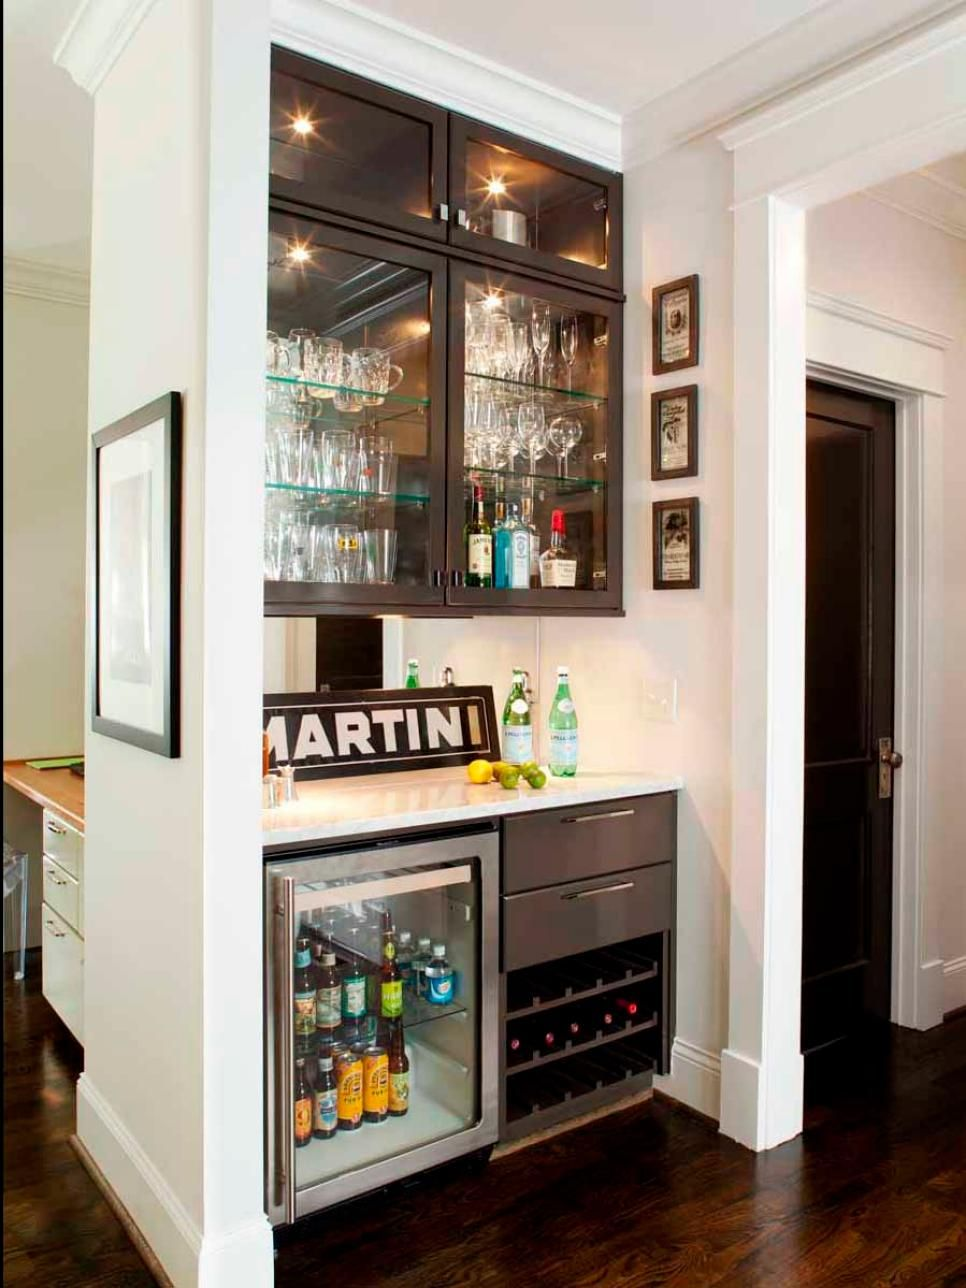 15 Stylish Small Home Bar Ideas Small Bars For Home Home Bar